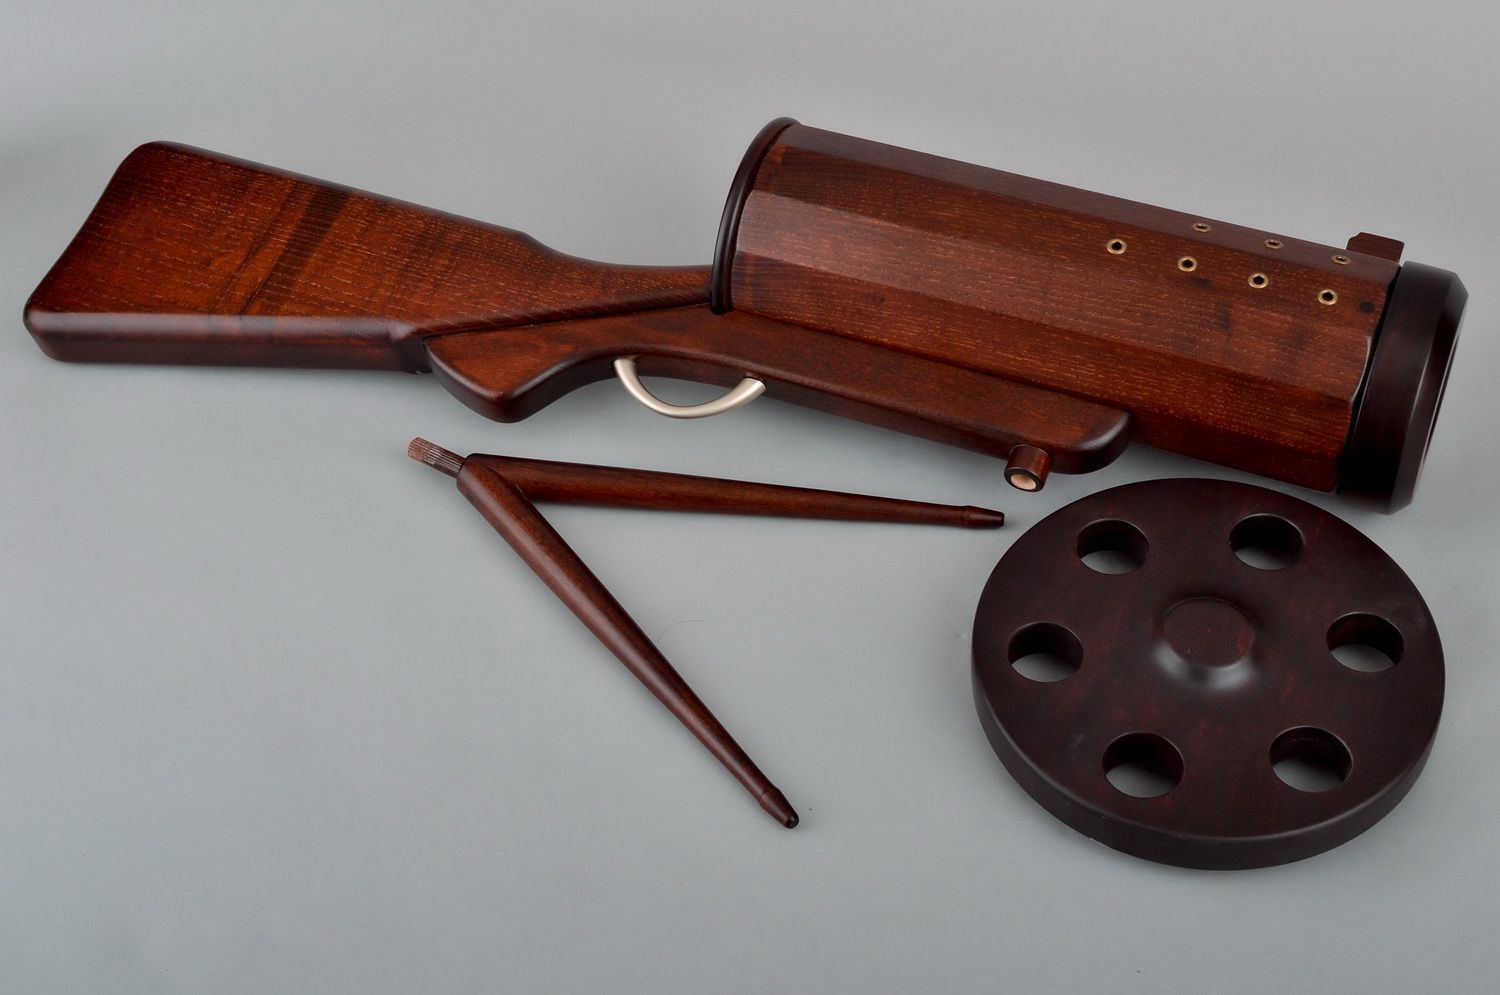 cases Wooden wine bottle stand in the form of a gun - MADEheart.com